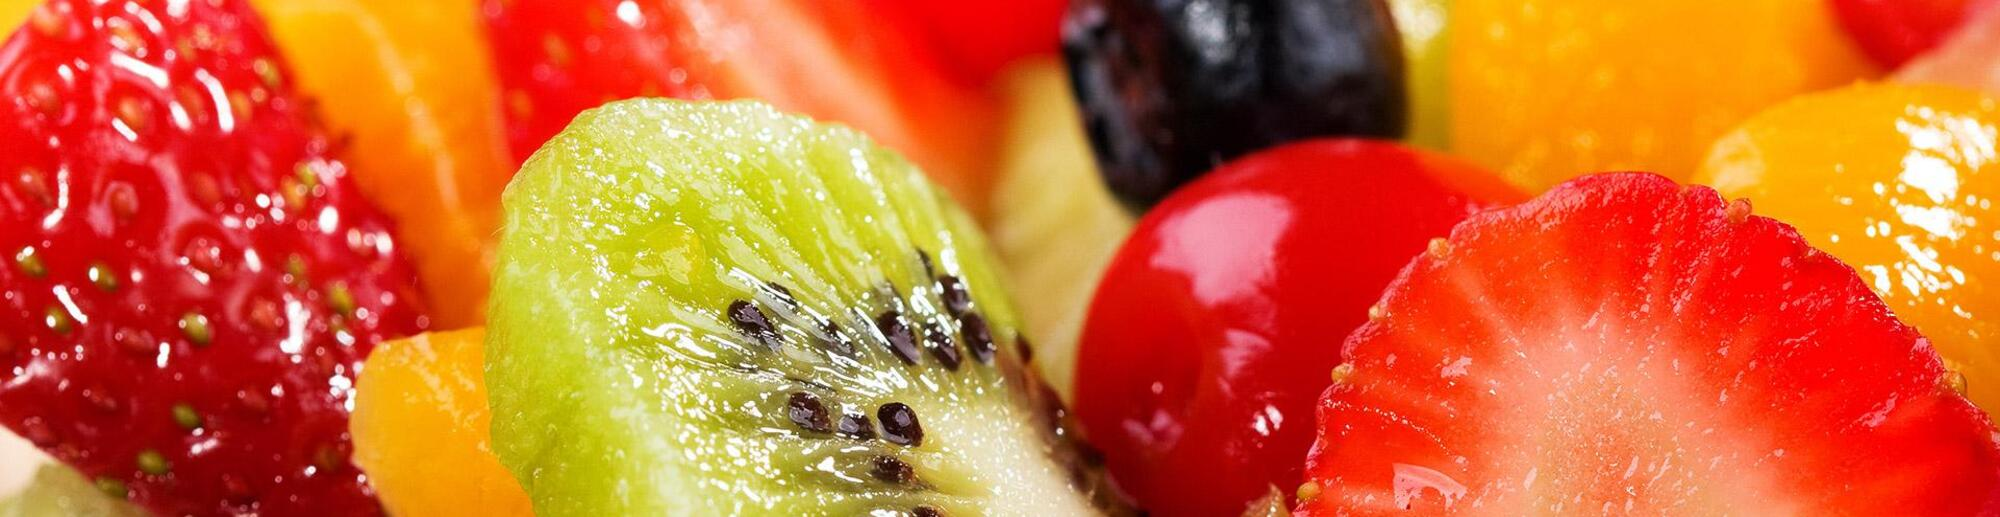 SPECIALE MACFRUT 2019